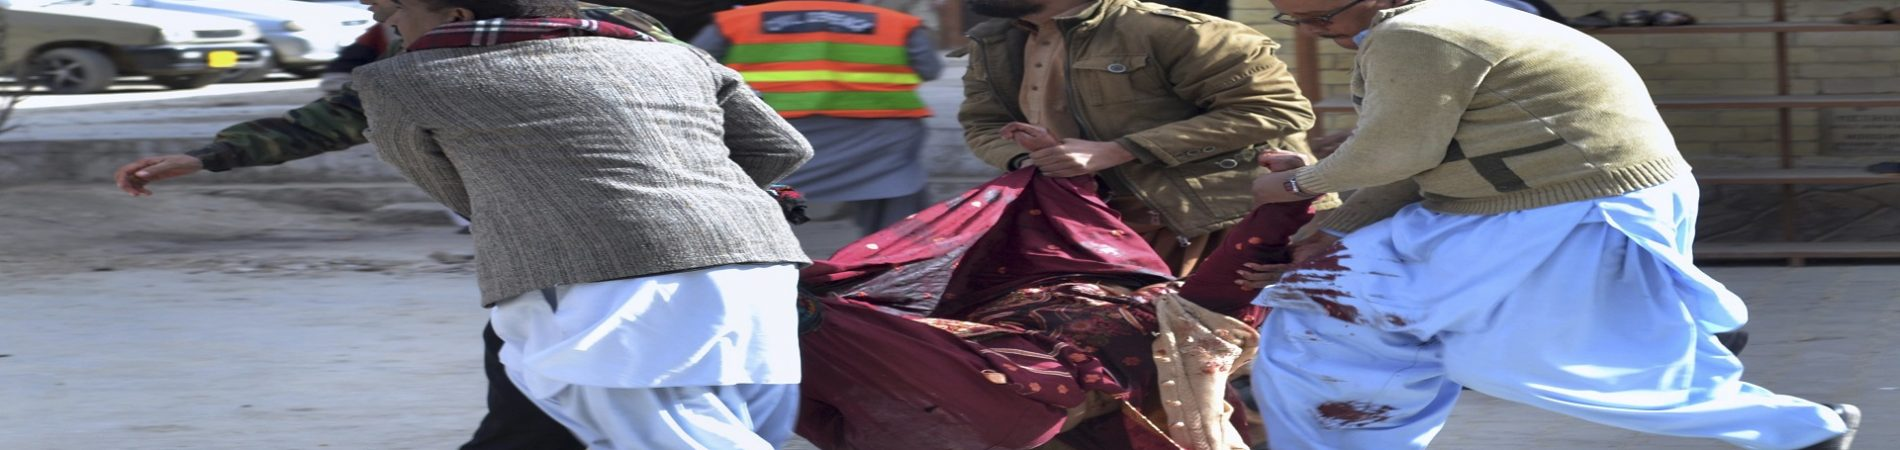 Pakistan church attack terror